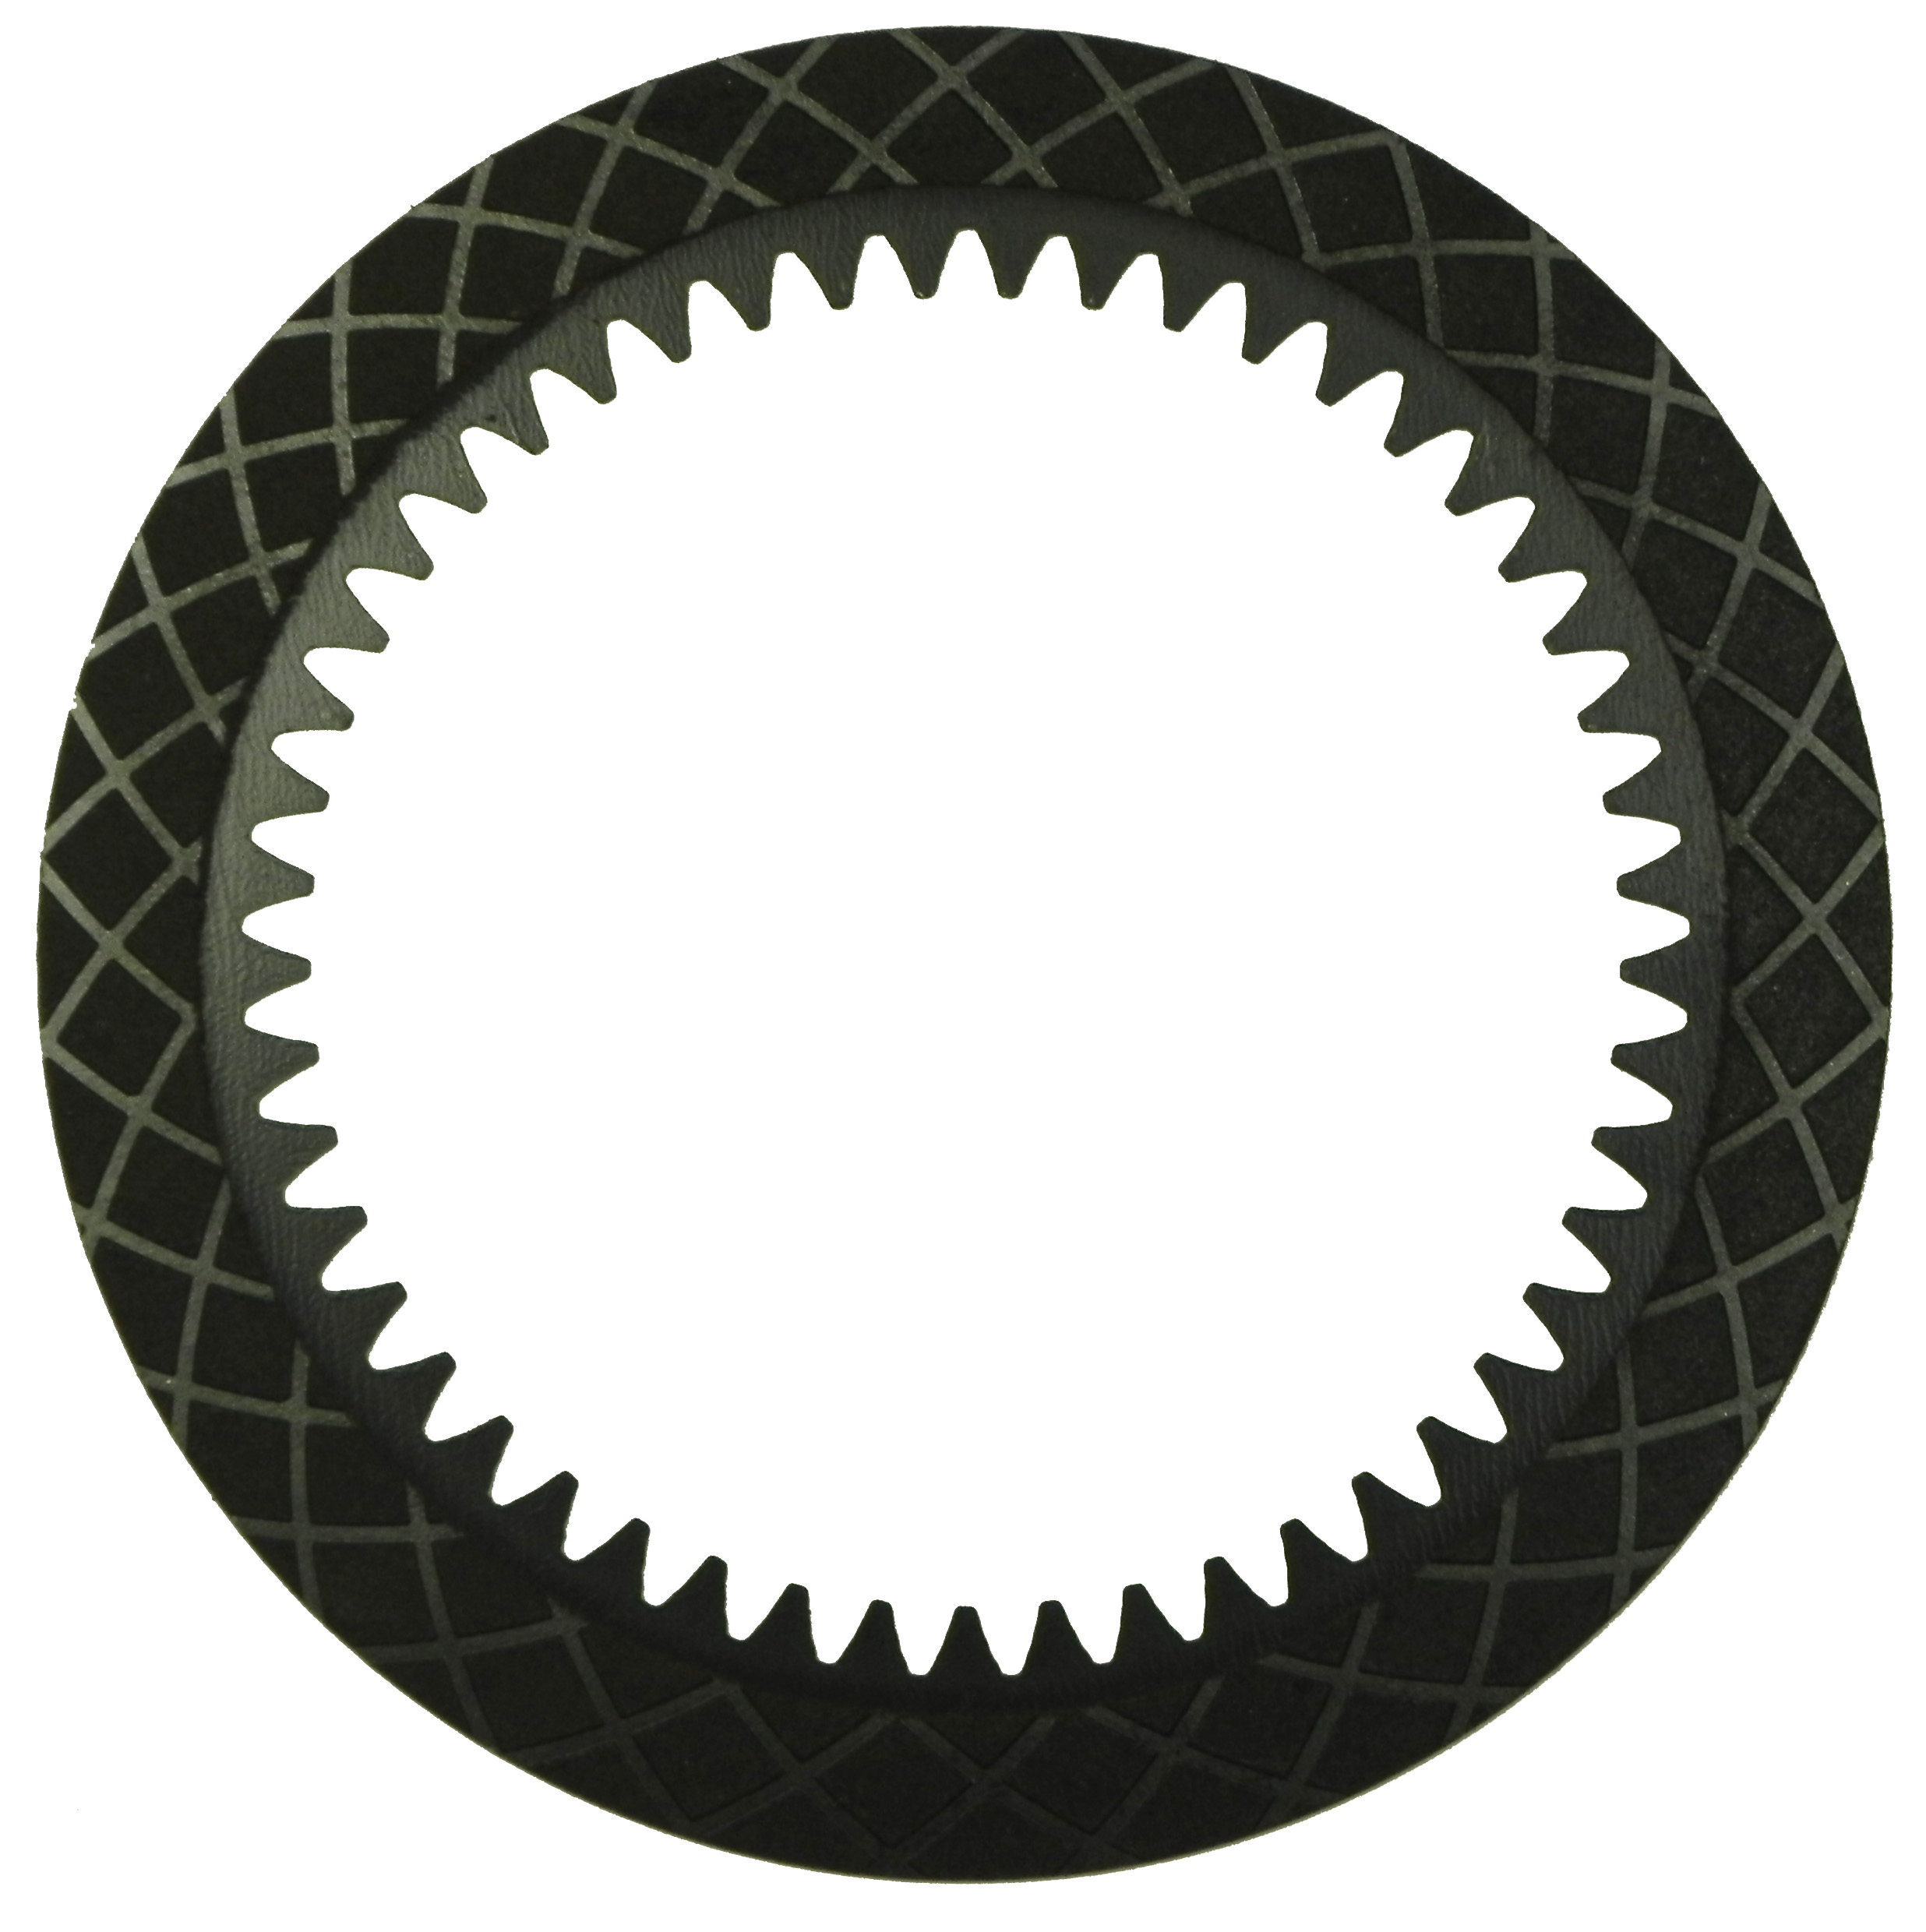 R571808 | 2007-2009 Friction Clutch Plate GPX Low GPX